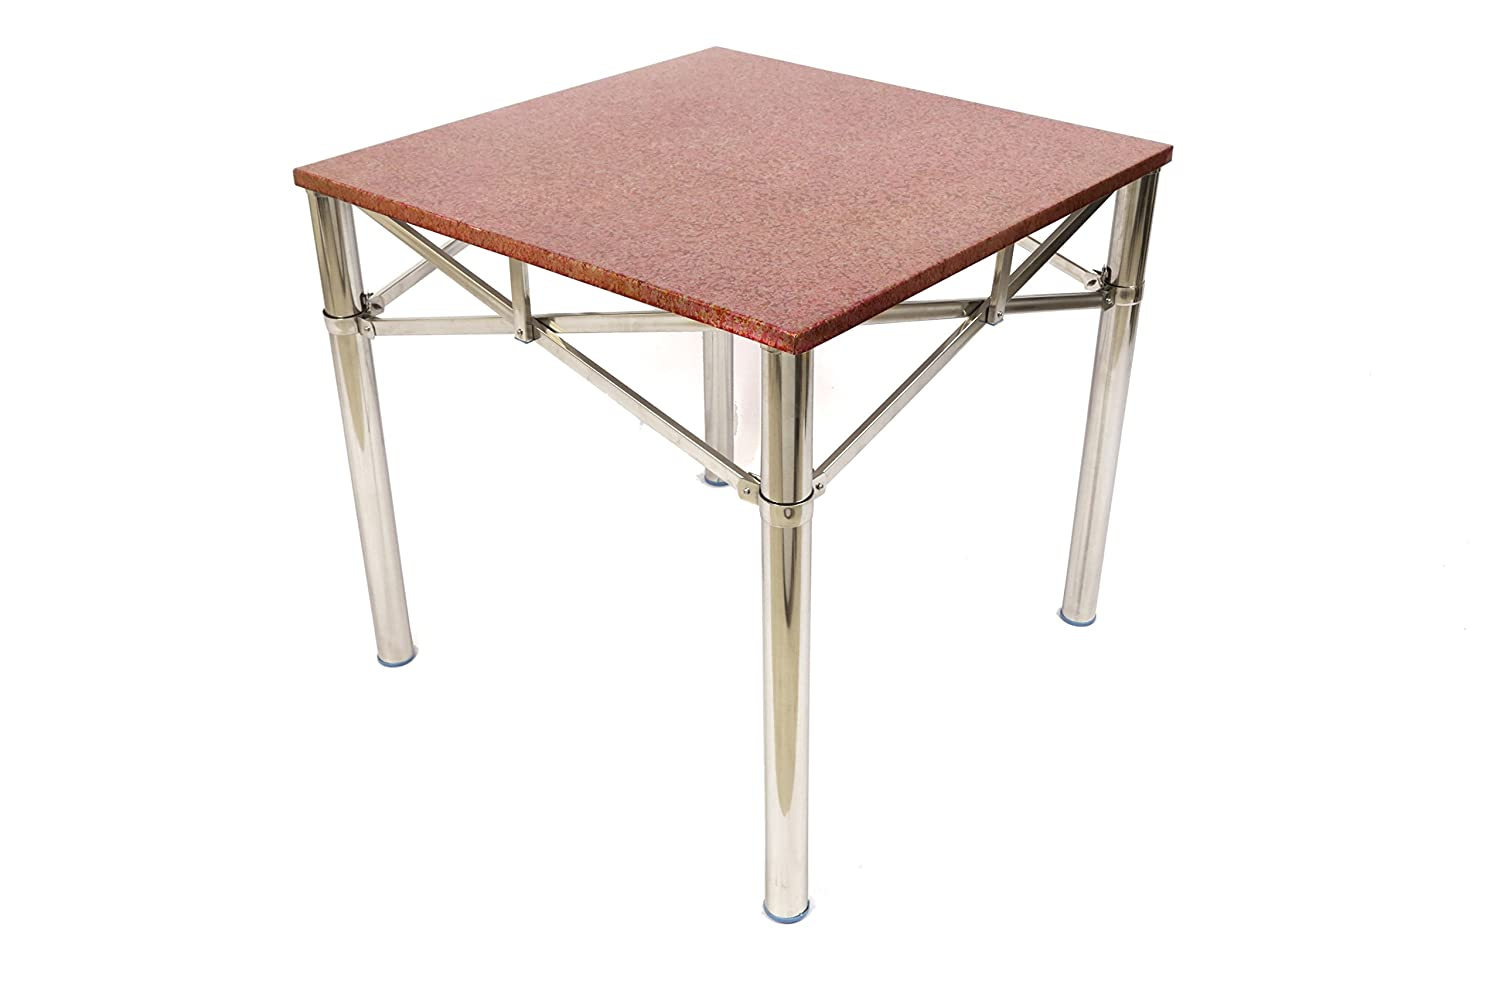 AARA Stainless Steel Folding Multi Purpose Table Can Be Used As